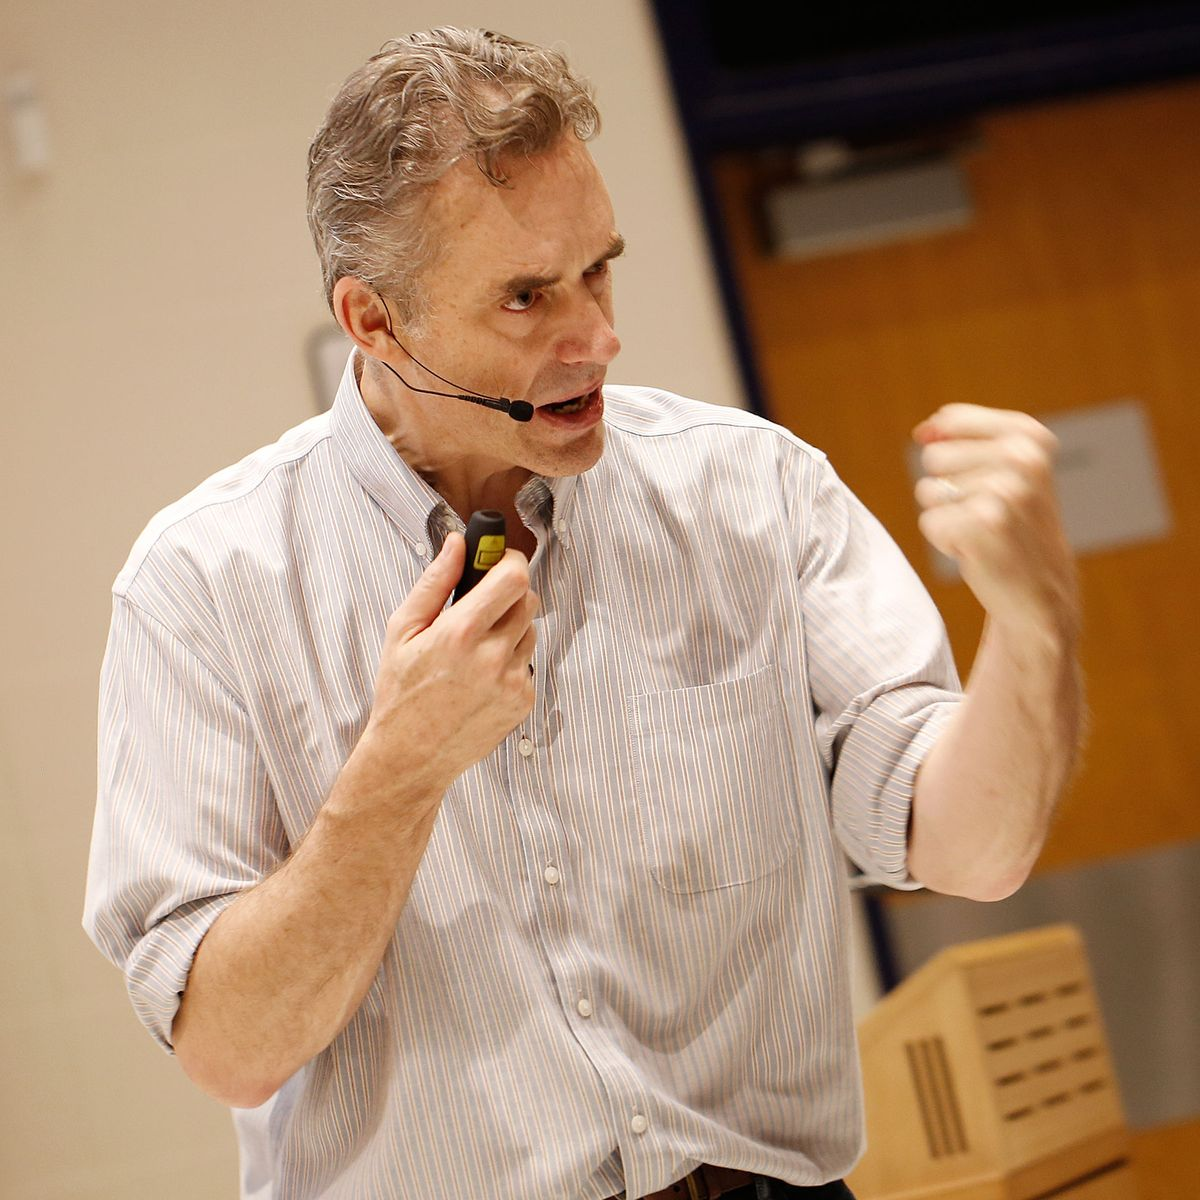 Espectador importante vía  Jordan Peterson Does Not Support 'Equality of Opportunity'